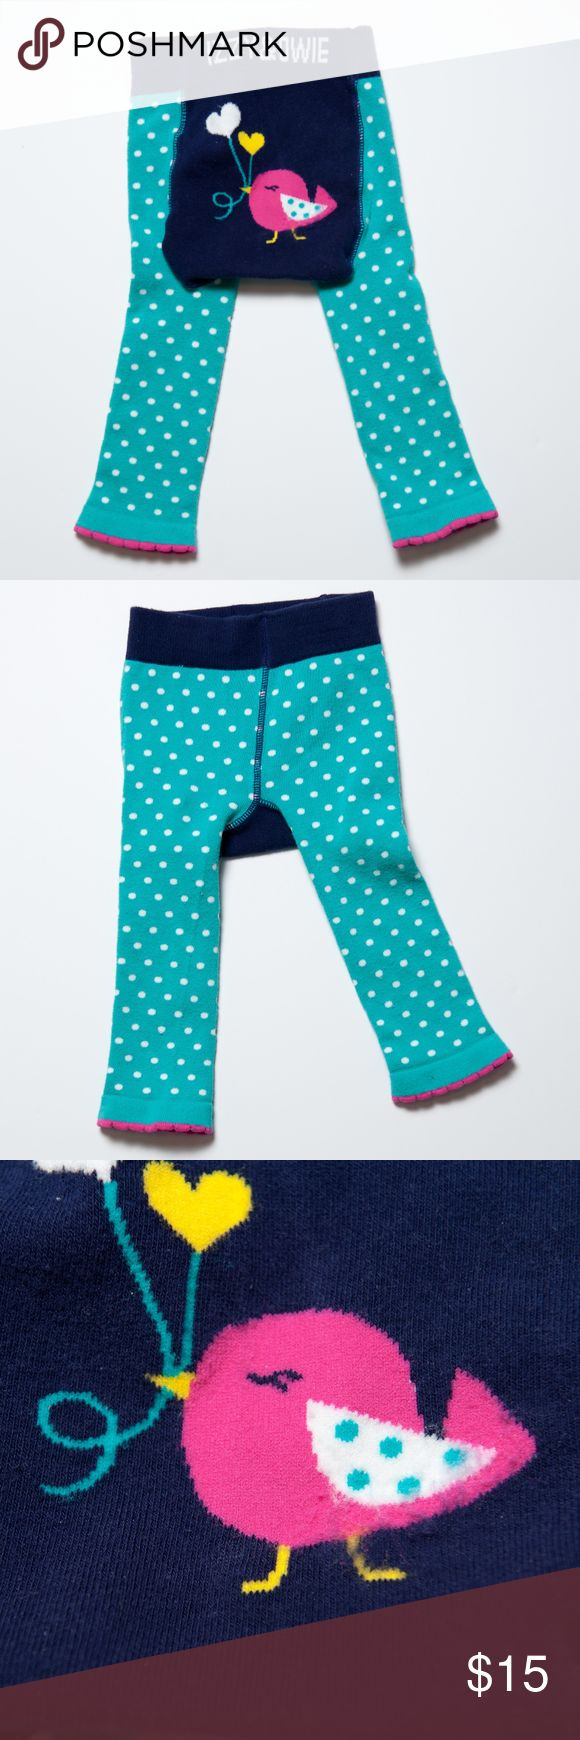 Izzy & Owie Aqua Navy Polkadot Birdie Leggins 6-12 Great used condition. Worn 1 or 2 times. 6-12 months Izzy & Owie baby/toddler leggings. Stretchy material with baby birdie and heart design on the back side. Navy with aqua and blue polkadots. Izzy & Owie Bottoms Leggings